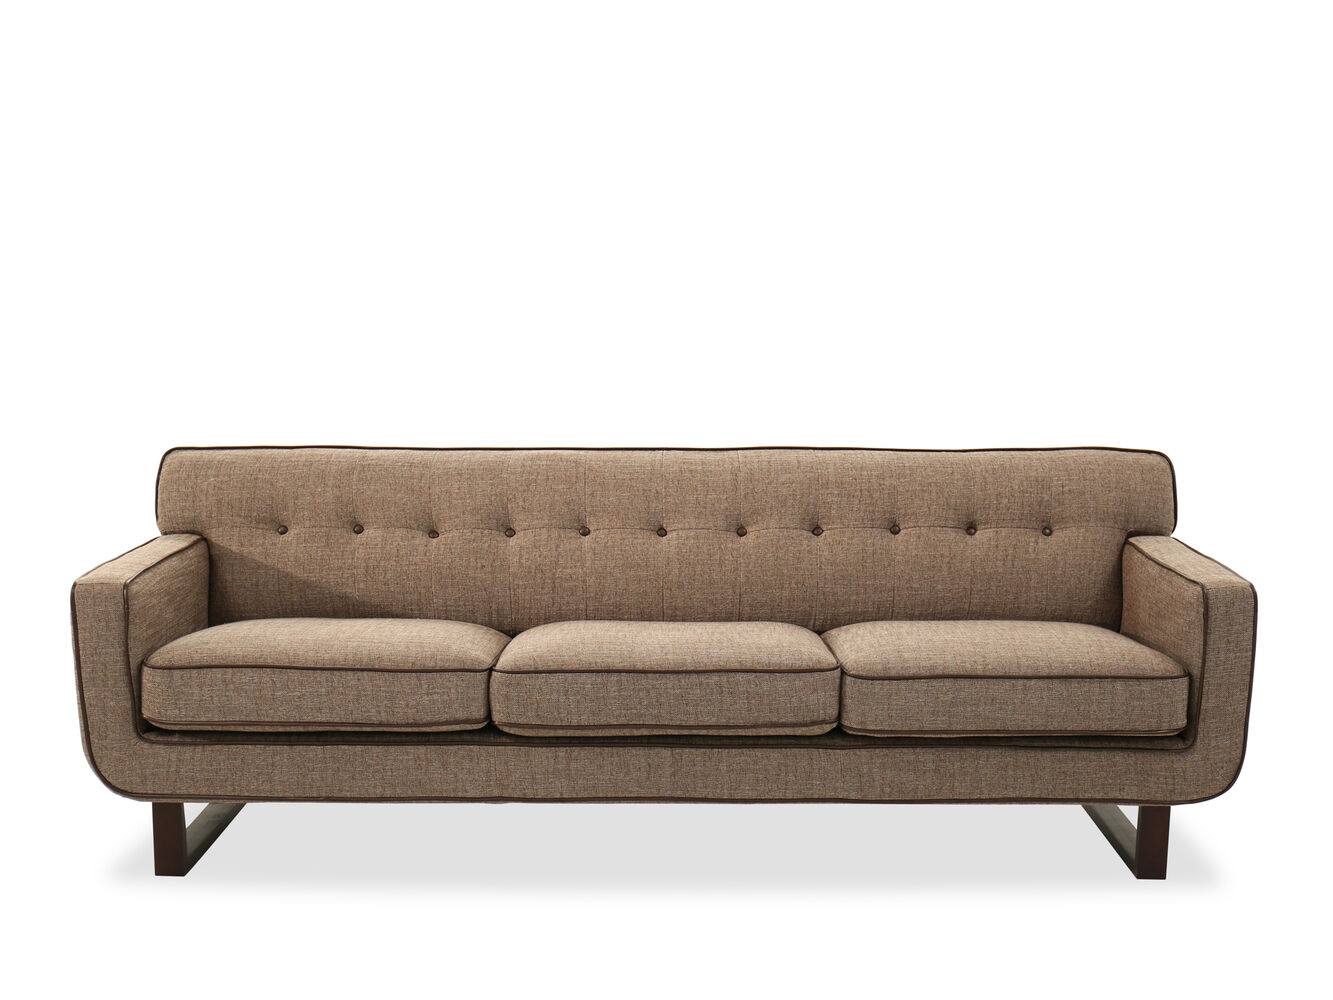 Tweed sofa reviews for Leather and tweed sofa